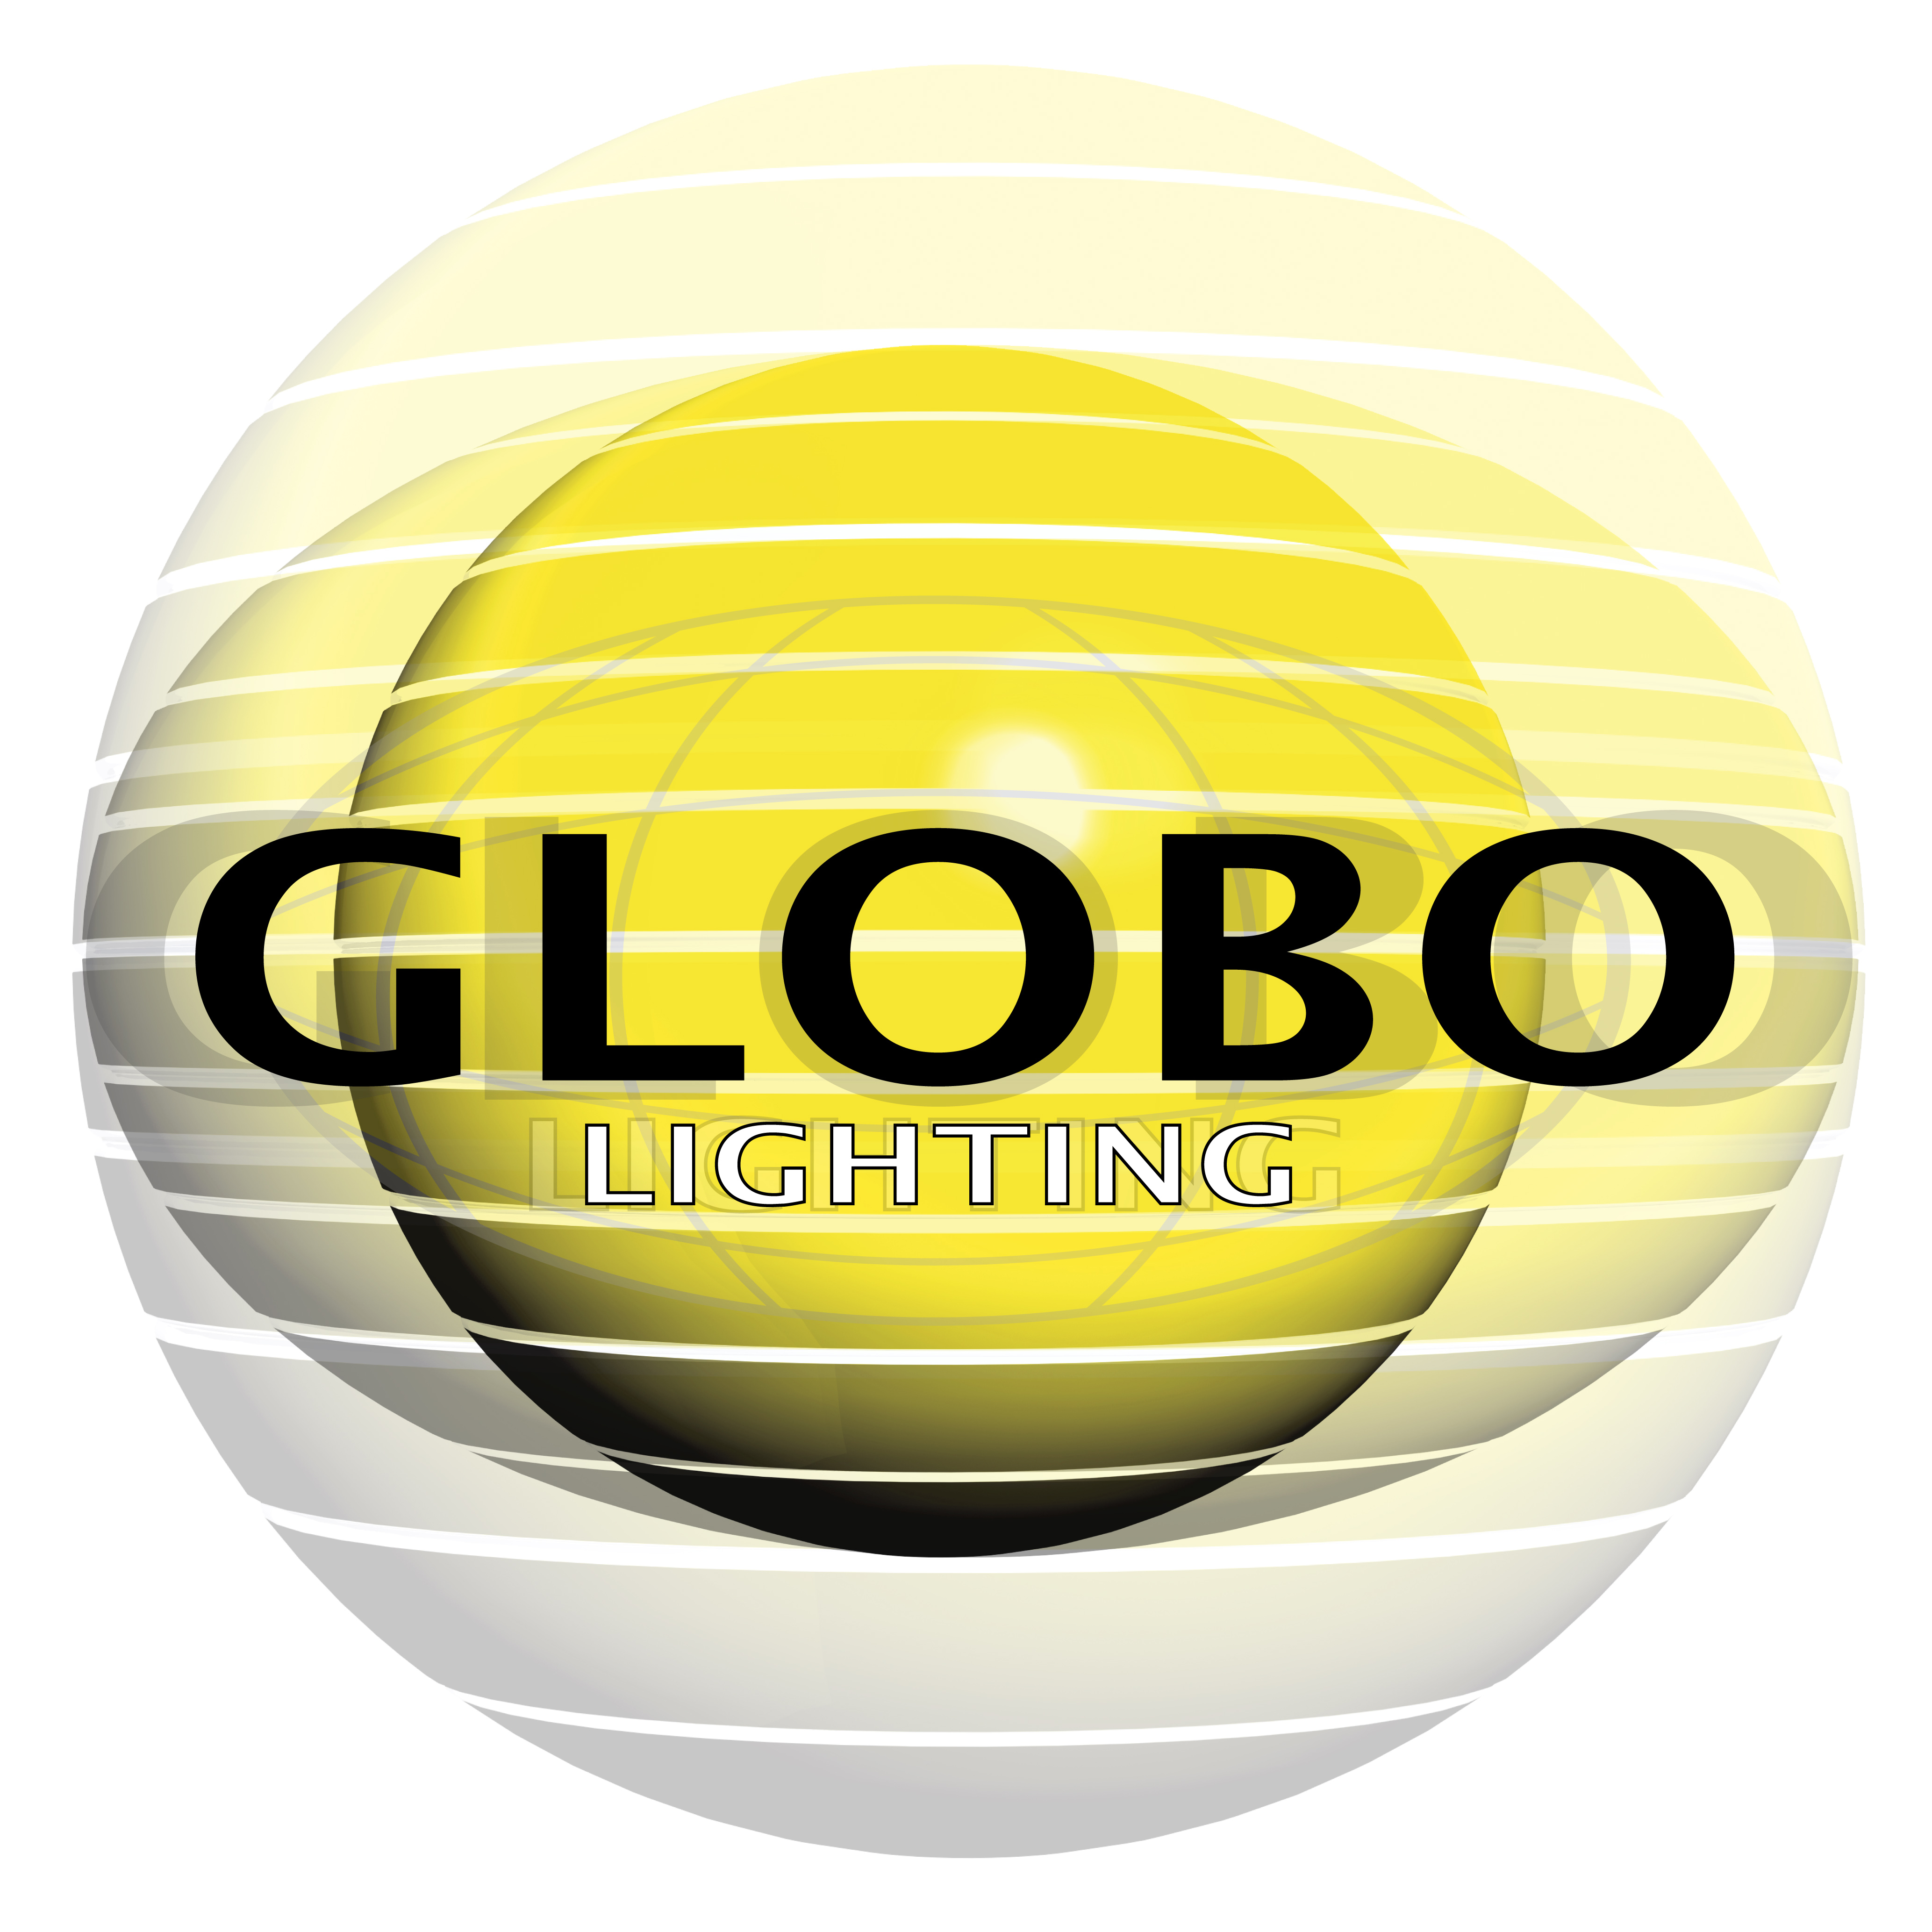 globo lighting led wandleuchte sterni in chrom wei eek a b 18 x h 30 cm limango outlet. Black Bedroom Furniture Sets. Home Design Ideas